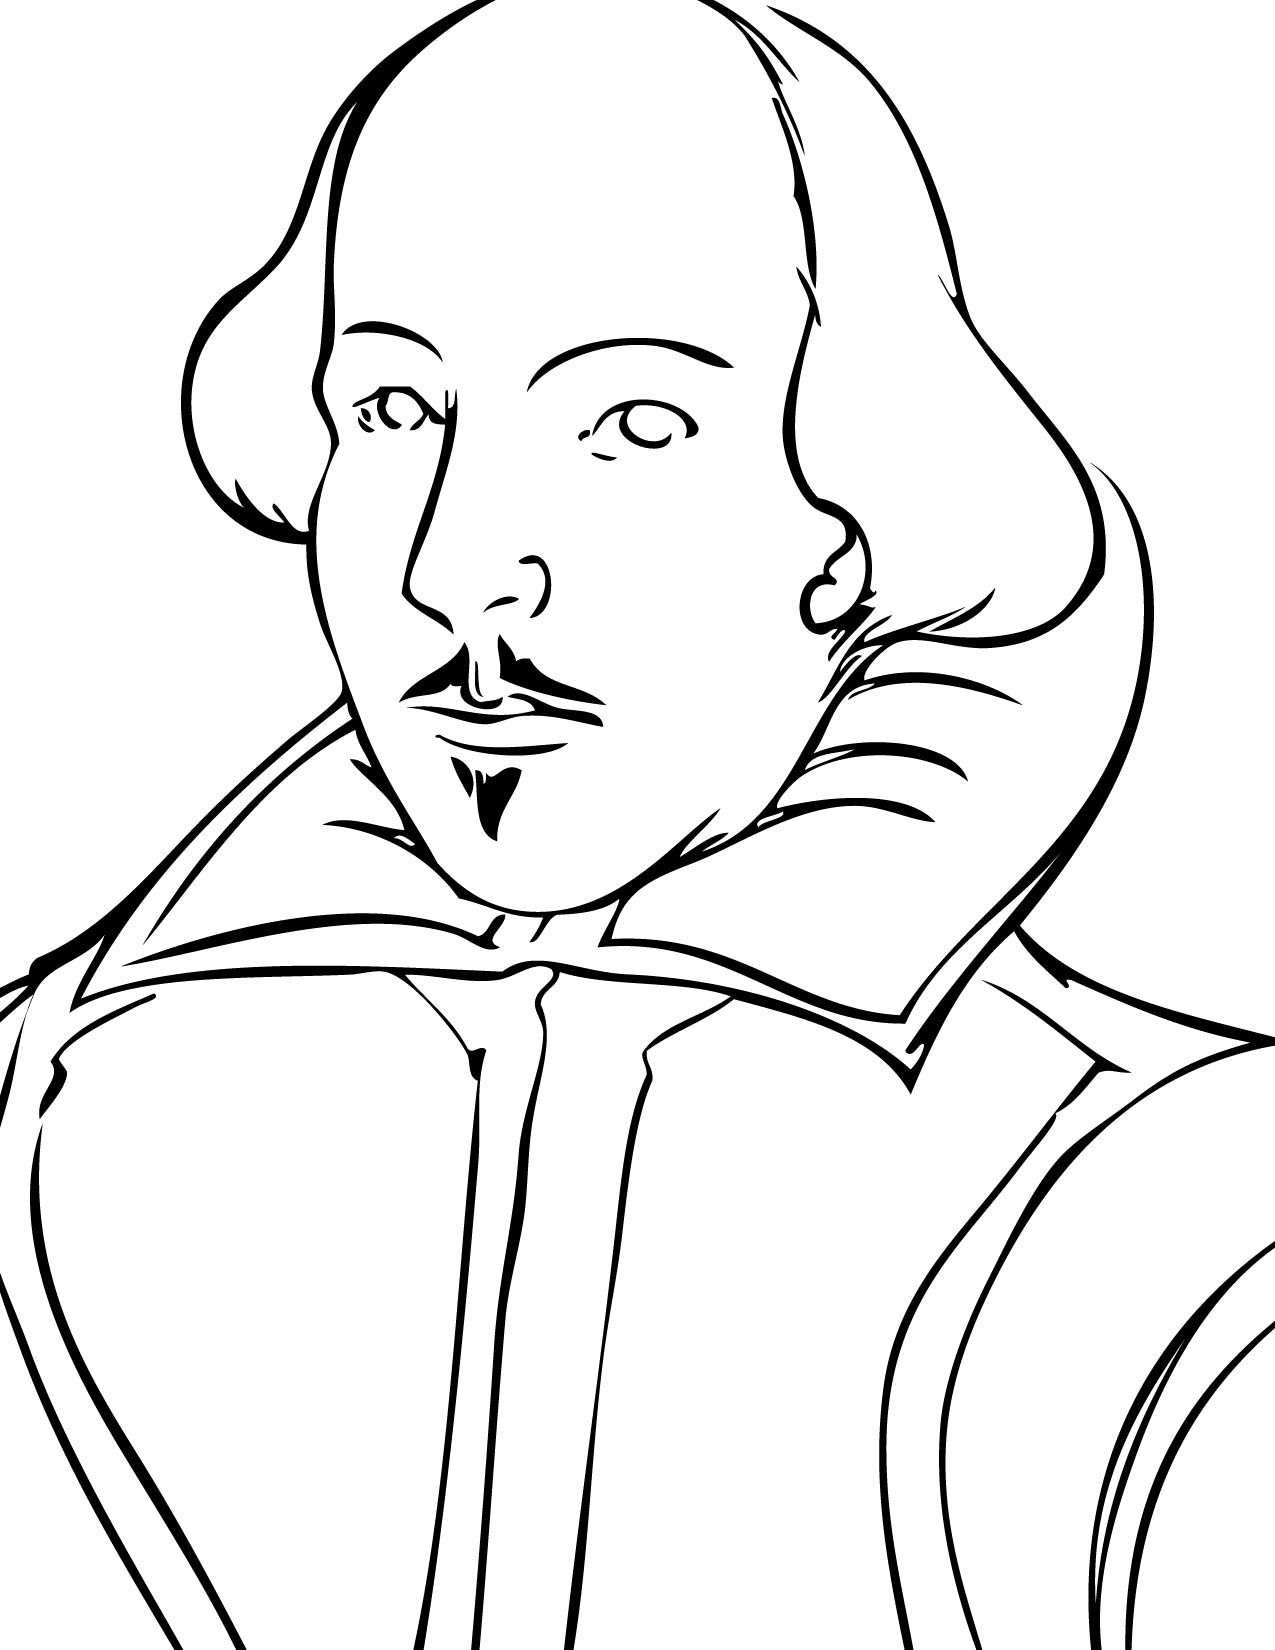 Good Coloring Page Of Shakespeare S Face If You Have To Do A Project Or Report Of Some Kind